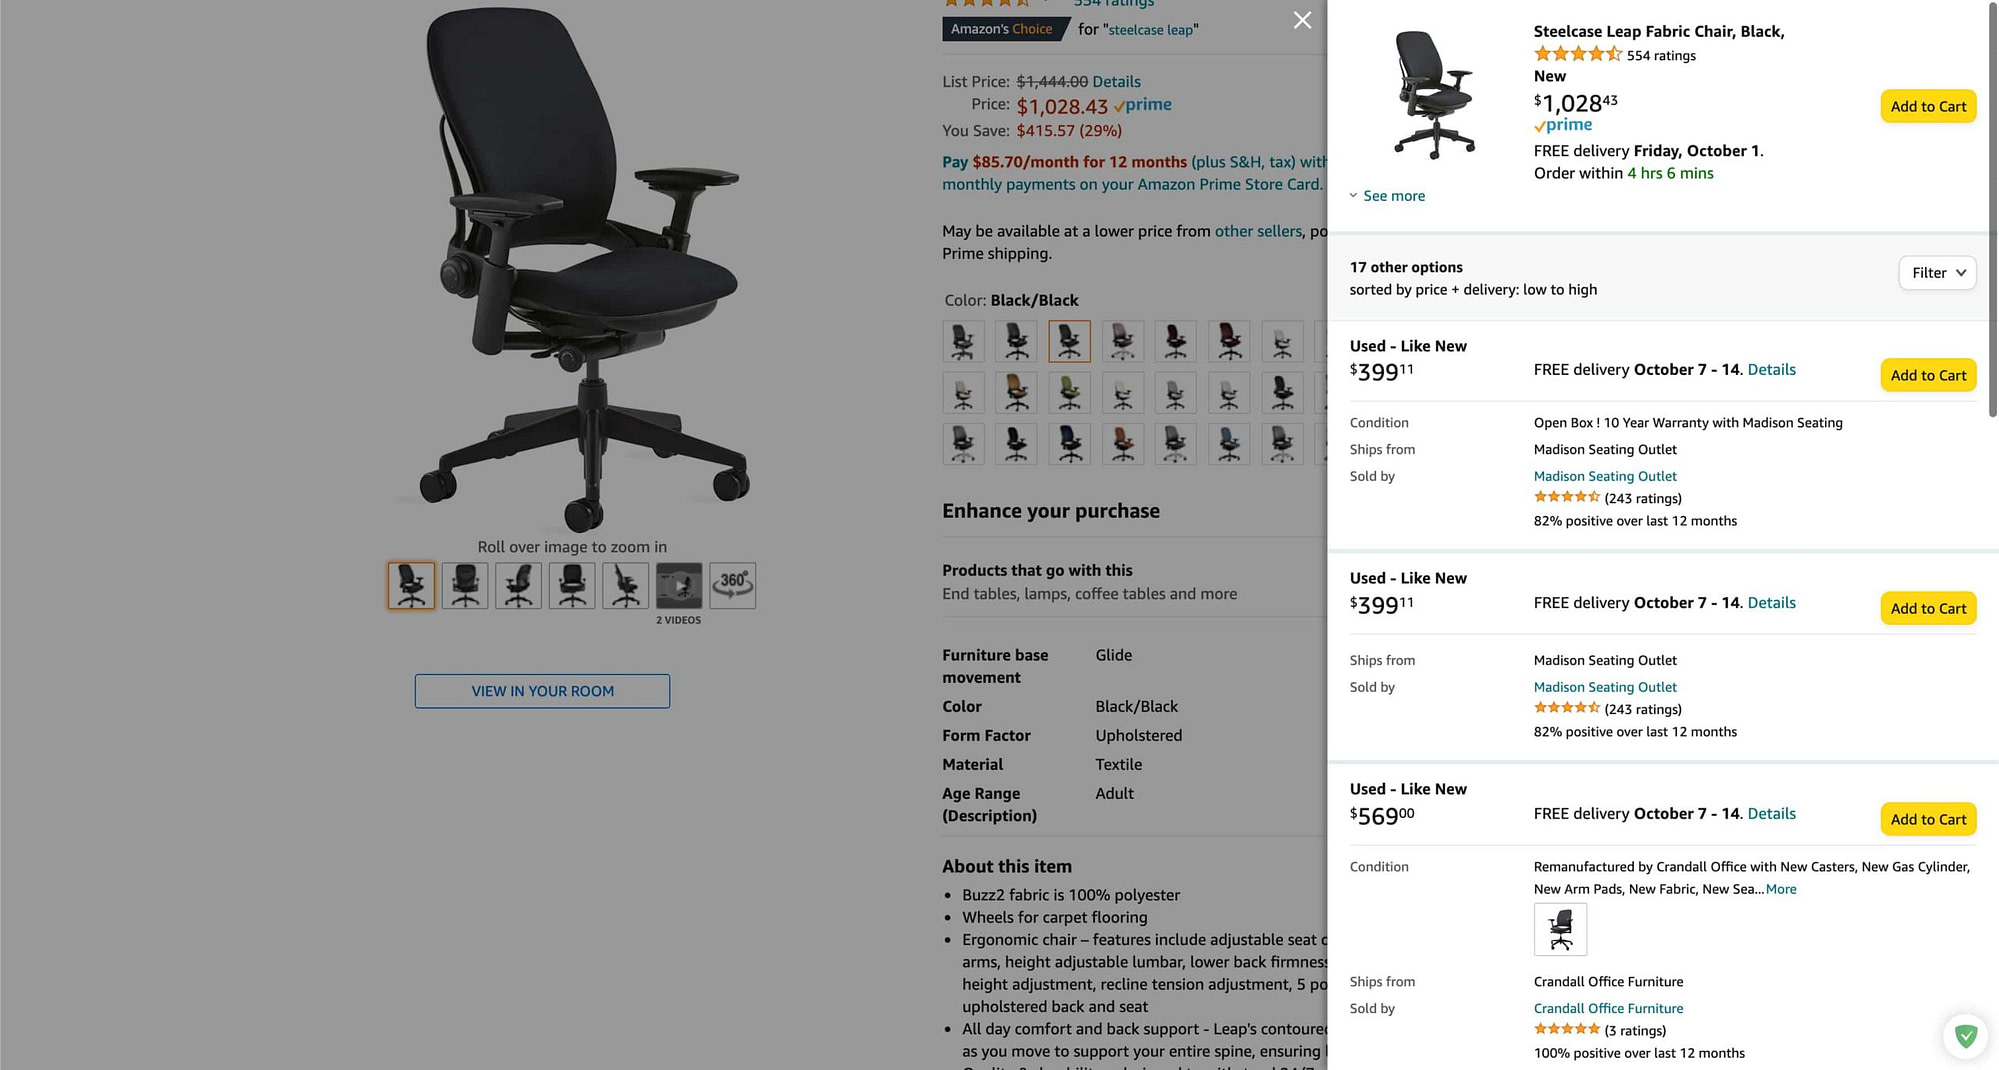 Steelcase Leap pre owned Amazon scaled